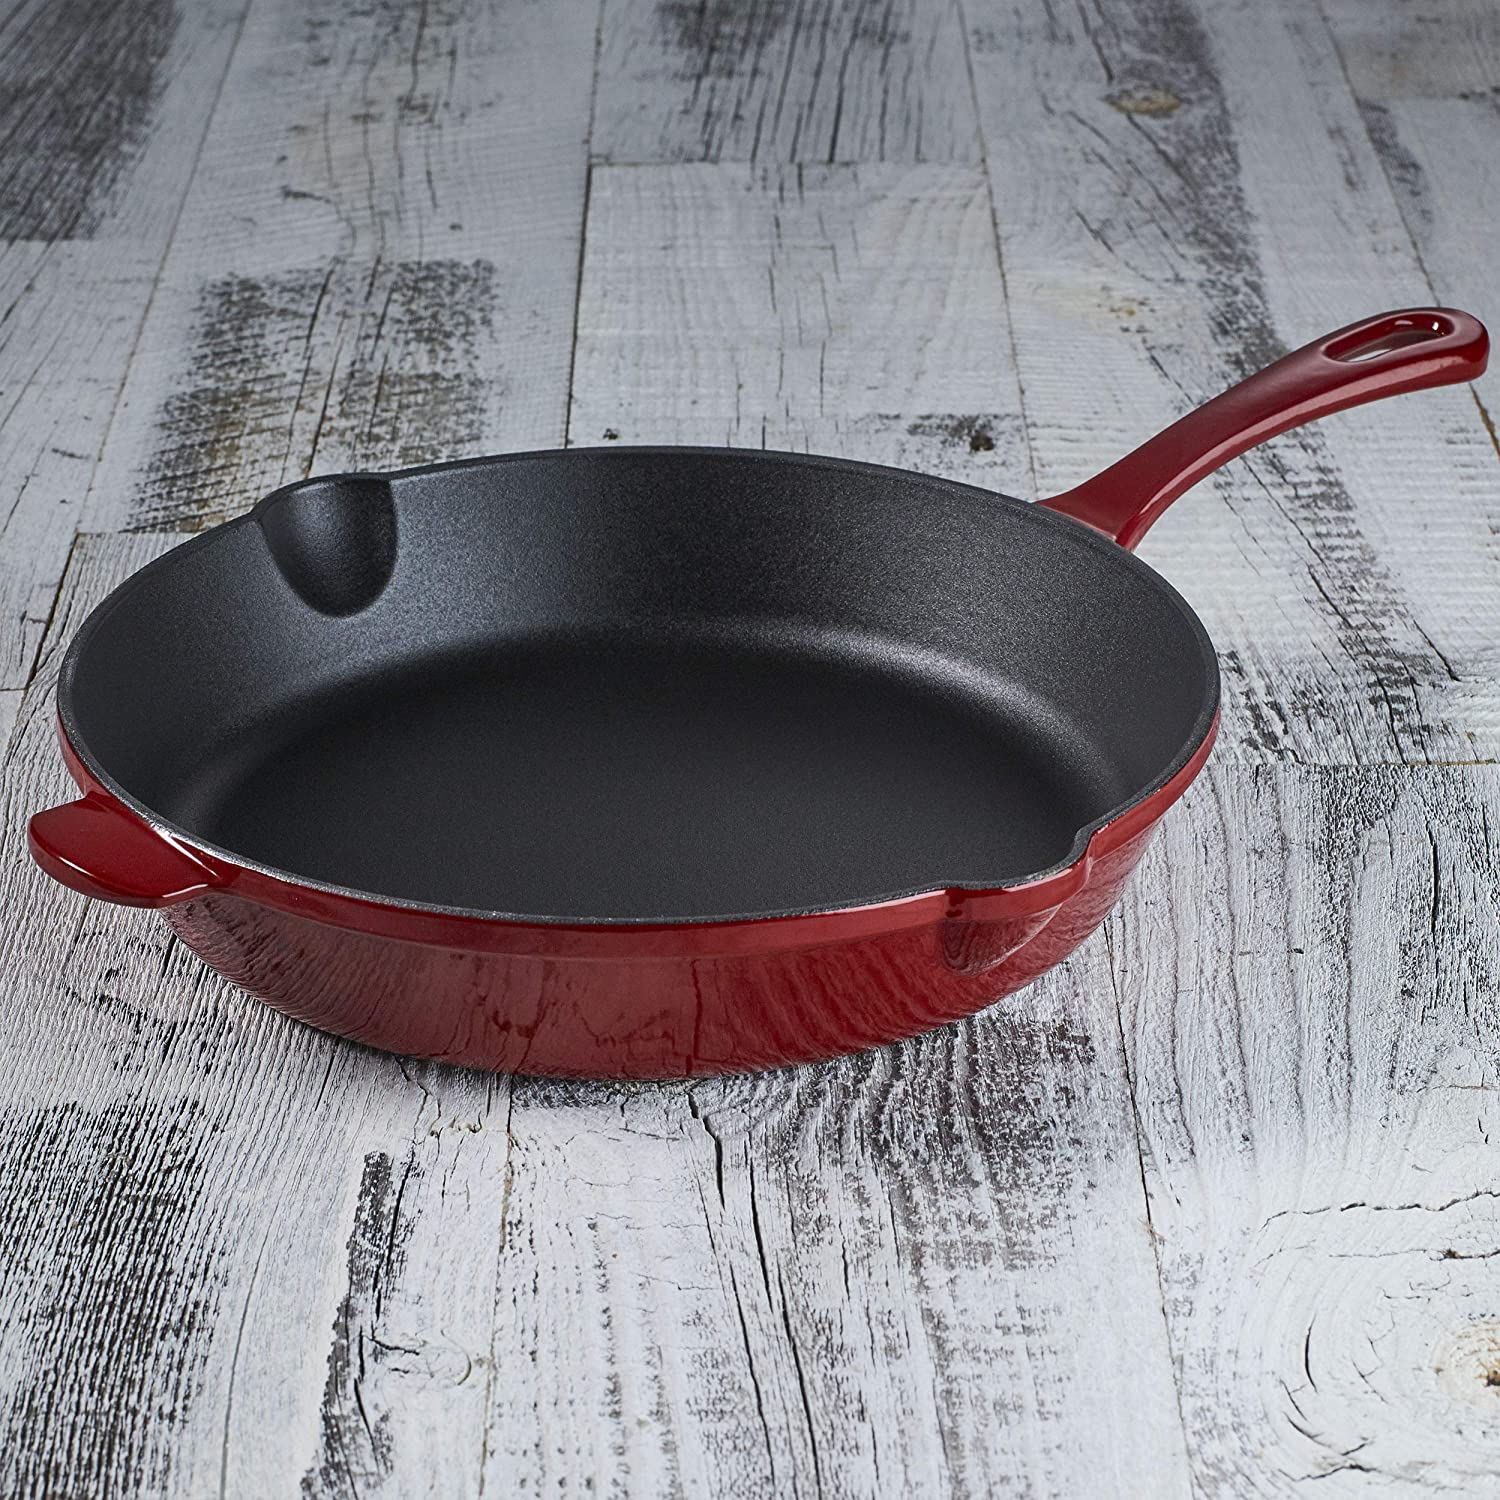 Cuisinart CI22-24CR Chef's Classic Enameled Cast Iron 10-Inch Round Fry Pan, Cardinal Red